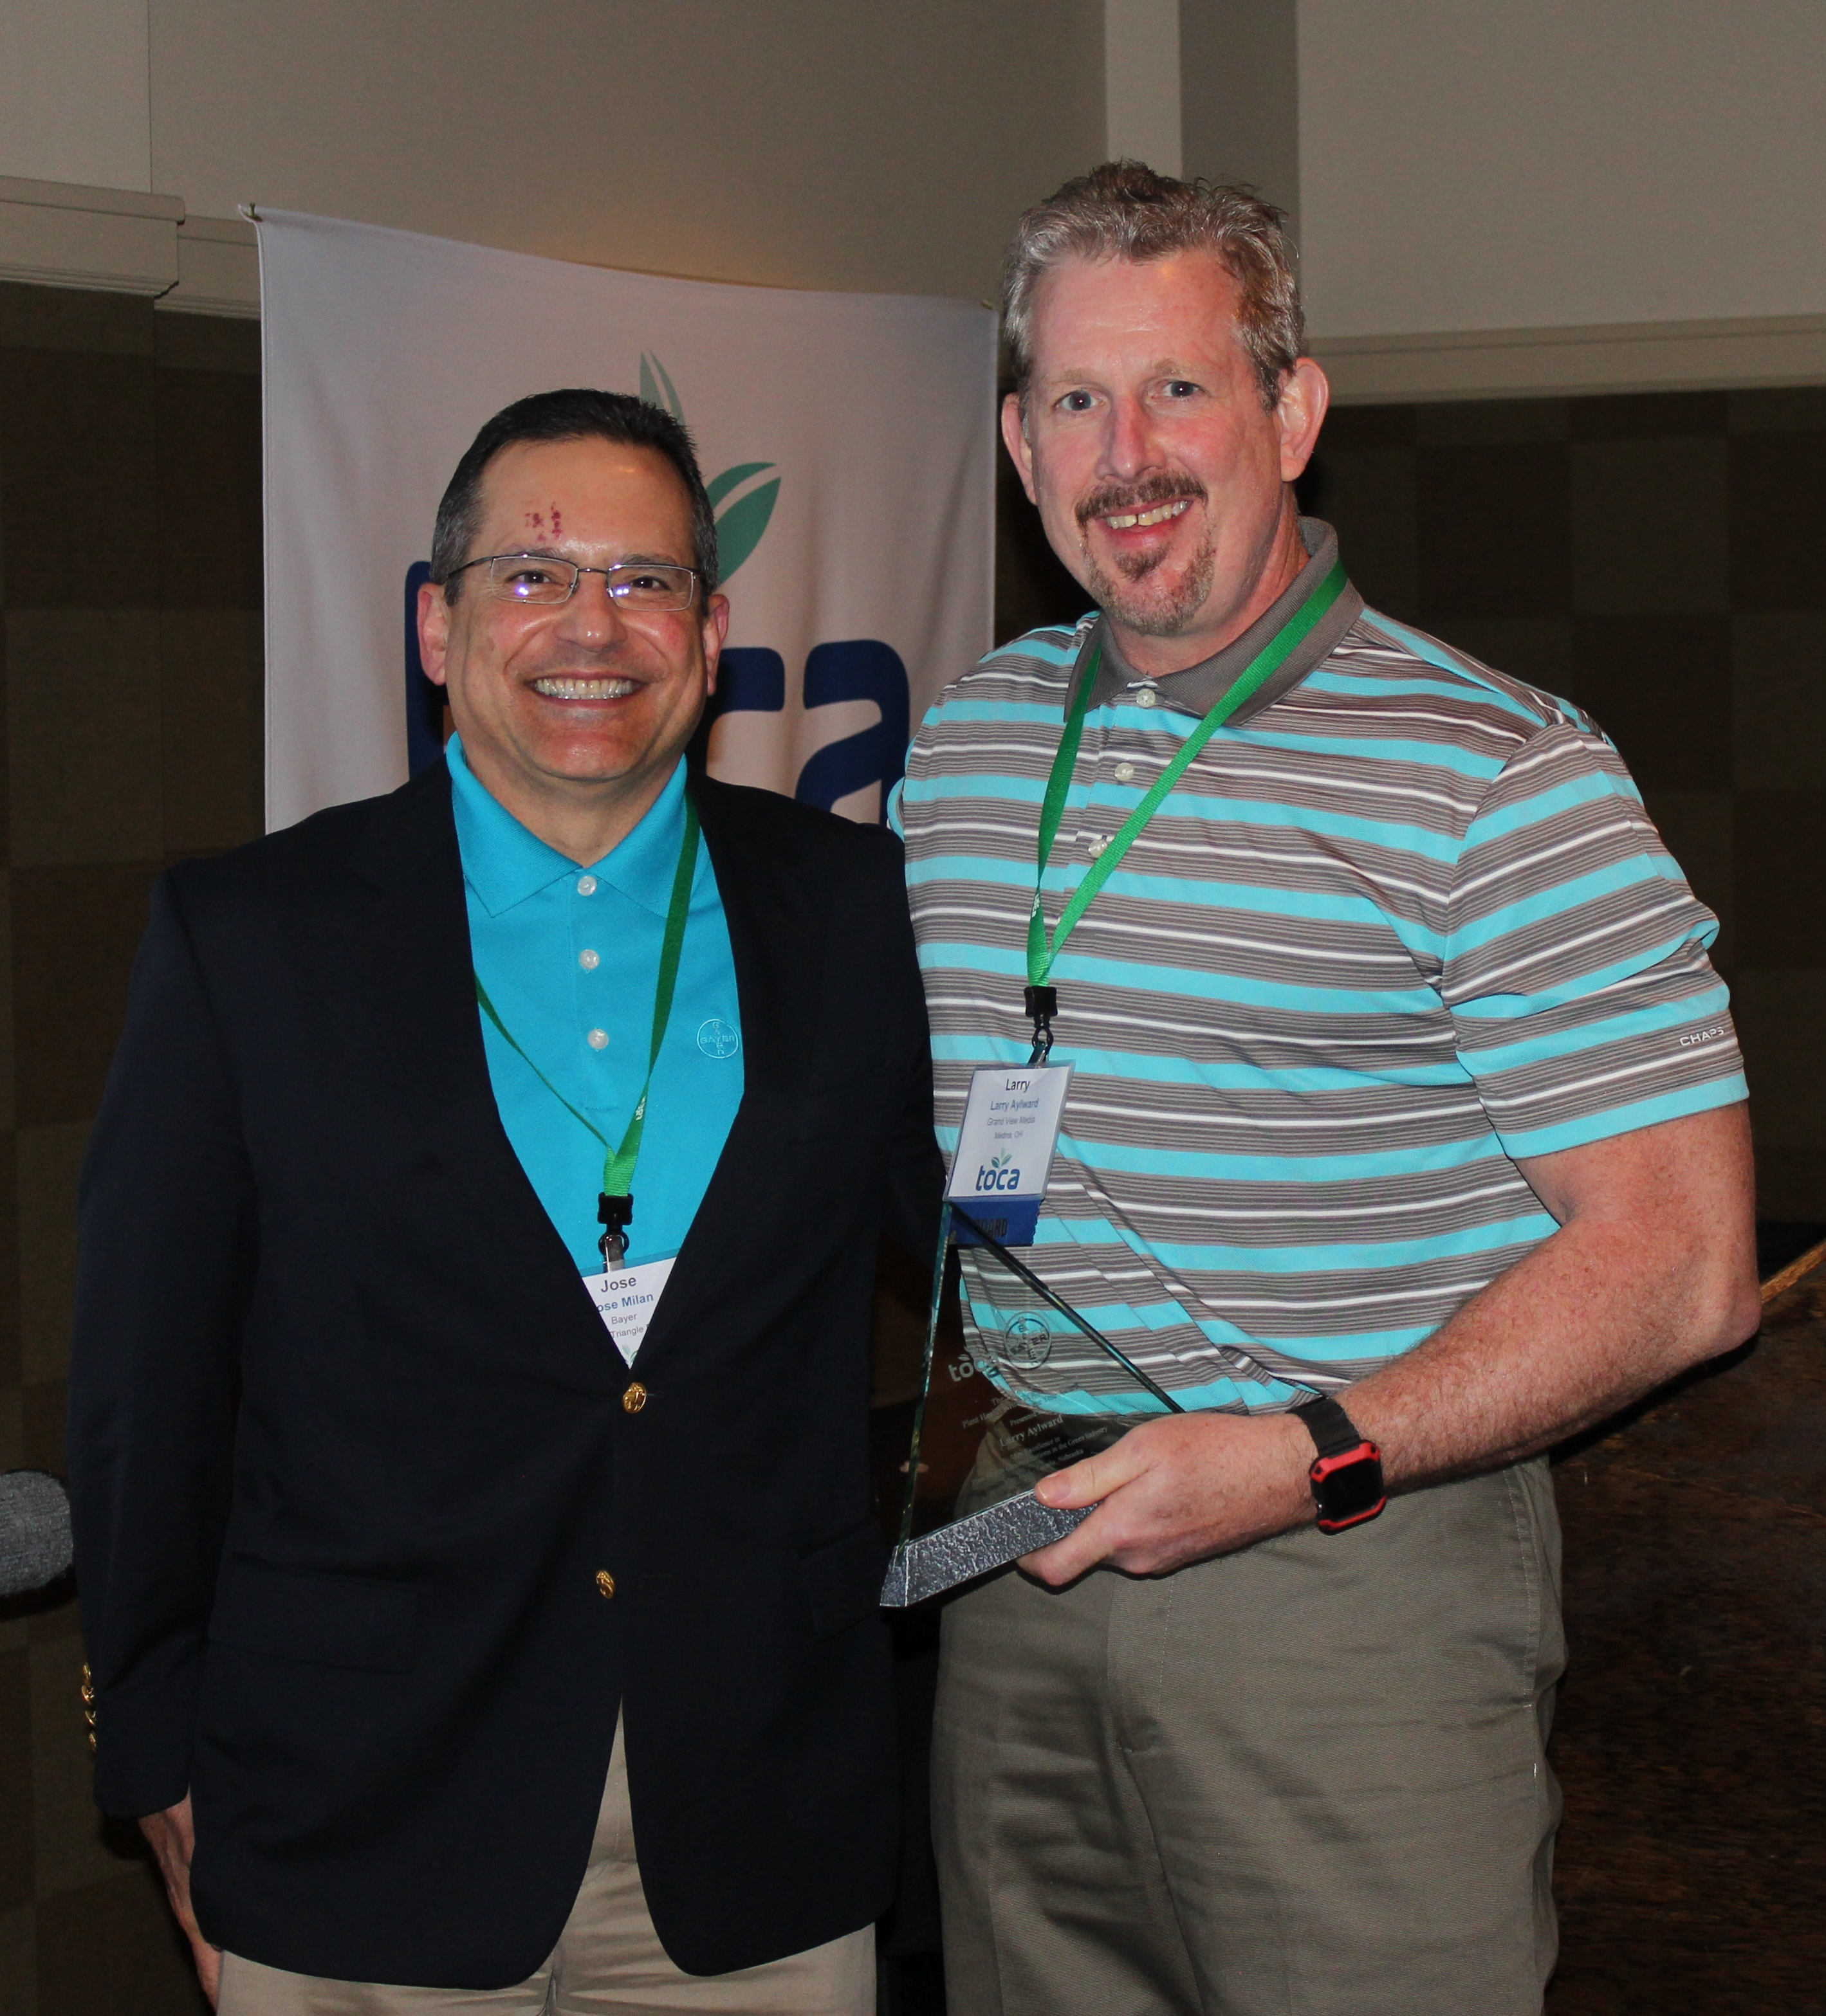 The 2016 Plant Health Writer of the Year, Larry Aylward (right), with Jose Milan of Bayer.